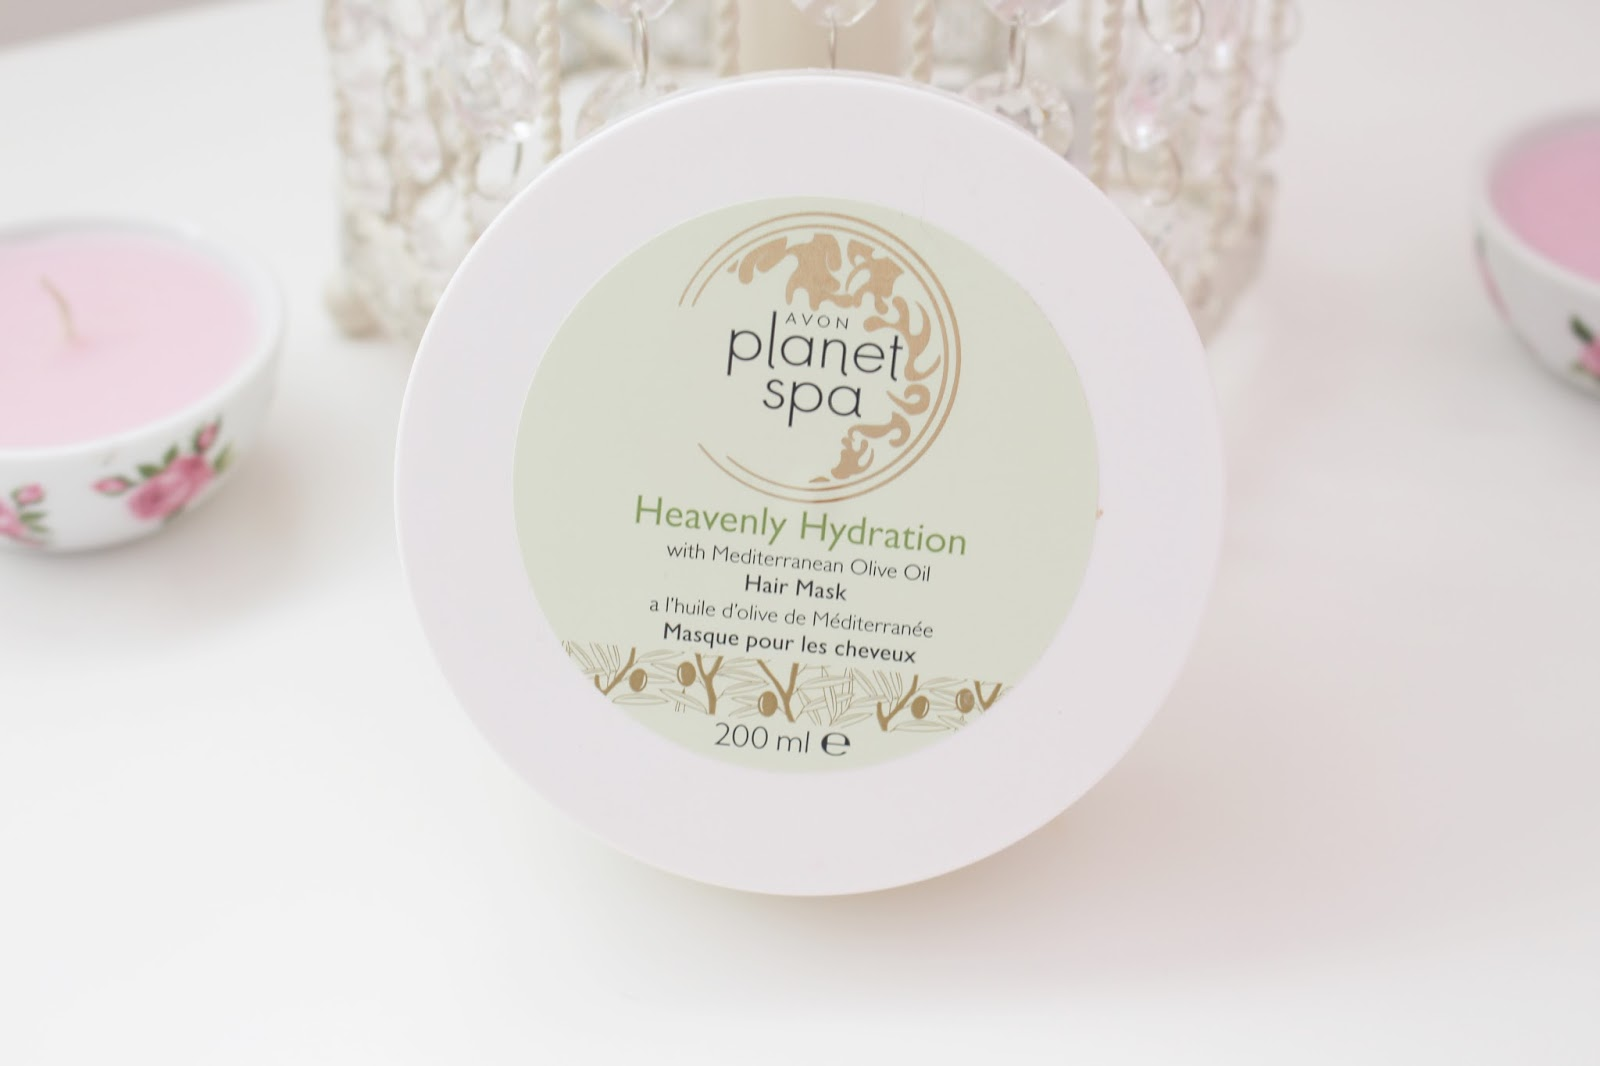 Avon Planet Spa Heavenly Hydration Hair Mask Review